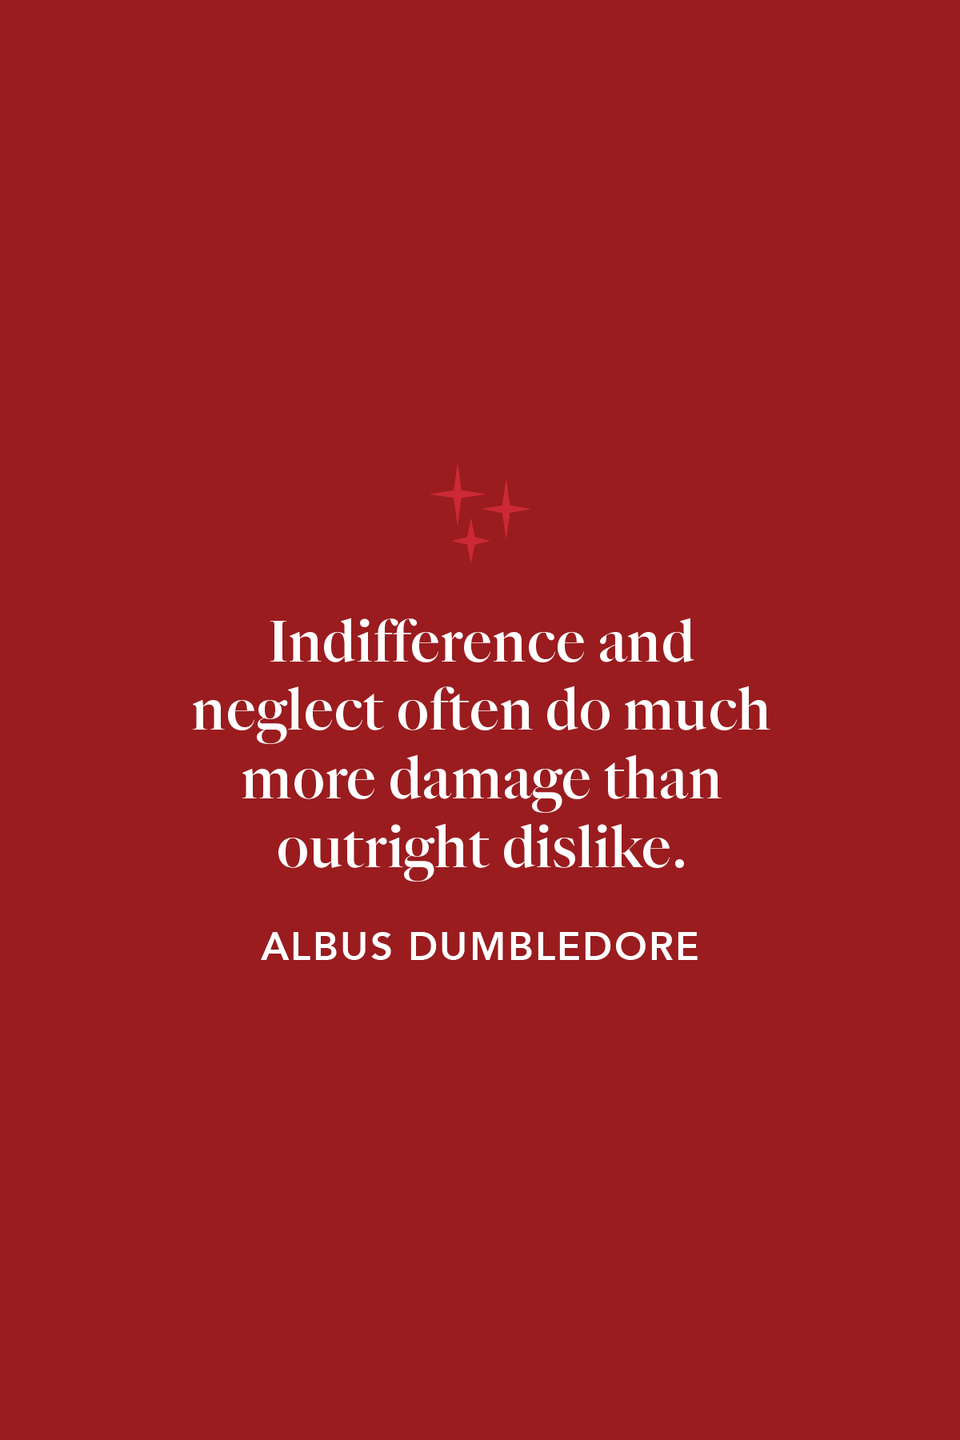 """<p>in chapter 37 of <em>The Order of the Phoenix</em>, Dumbledore says, """"Indifference and neglect often do much more damage than outright dislike.""""</p>"""